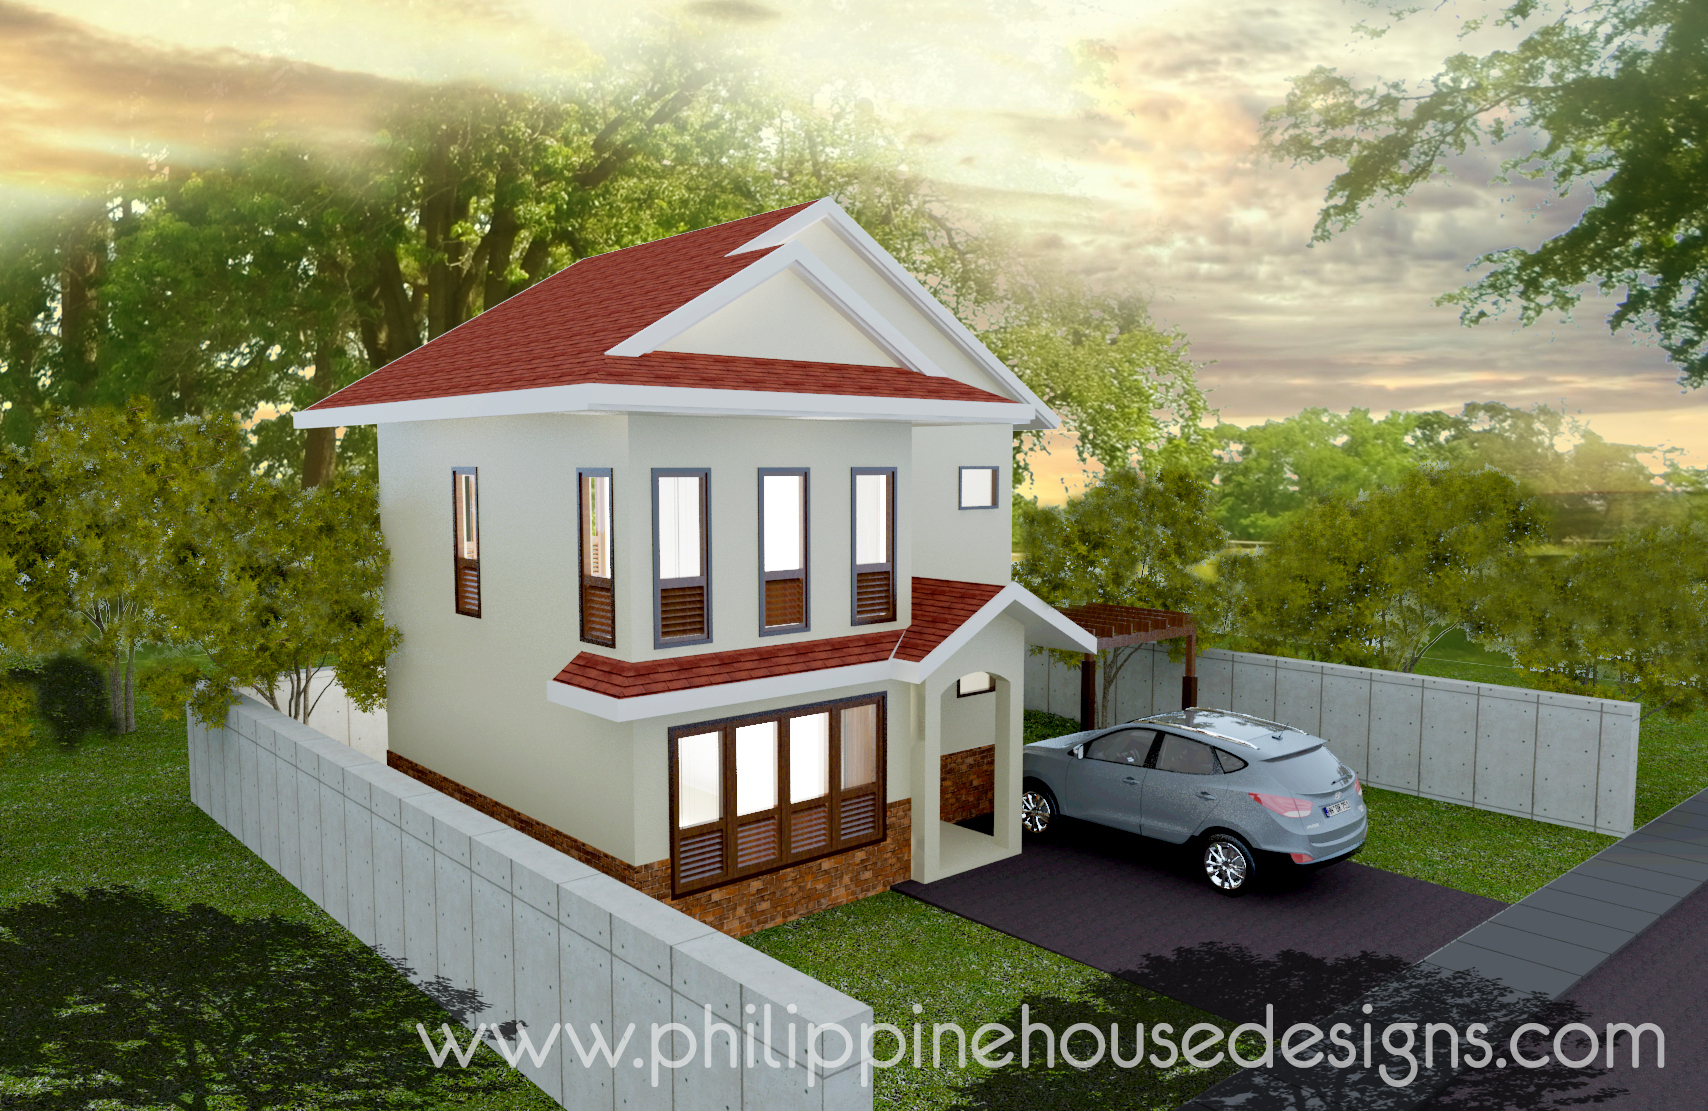 Simple Modern House Designs and Plans | Philippine House ...